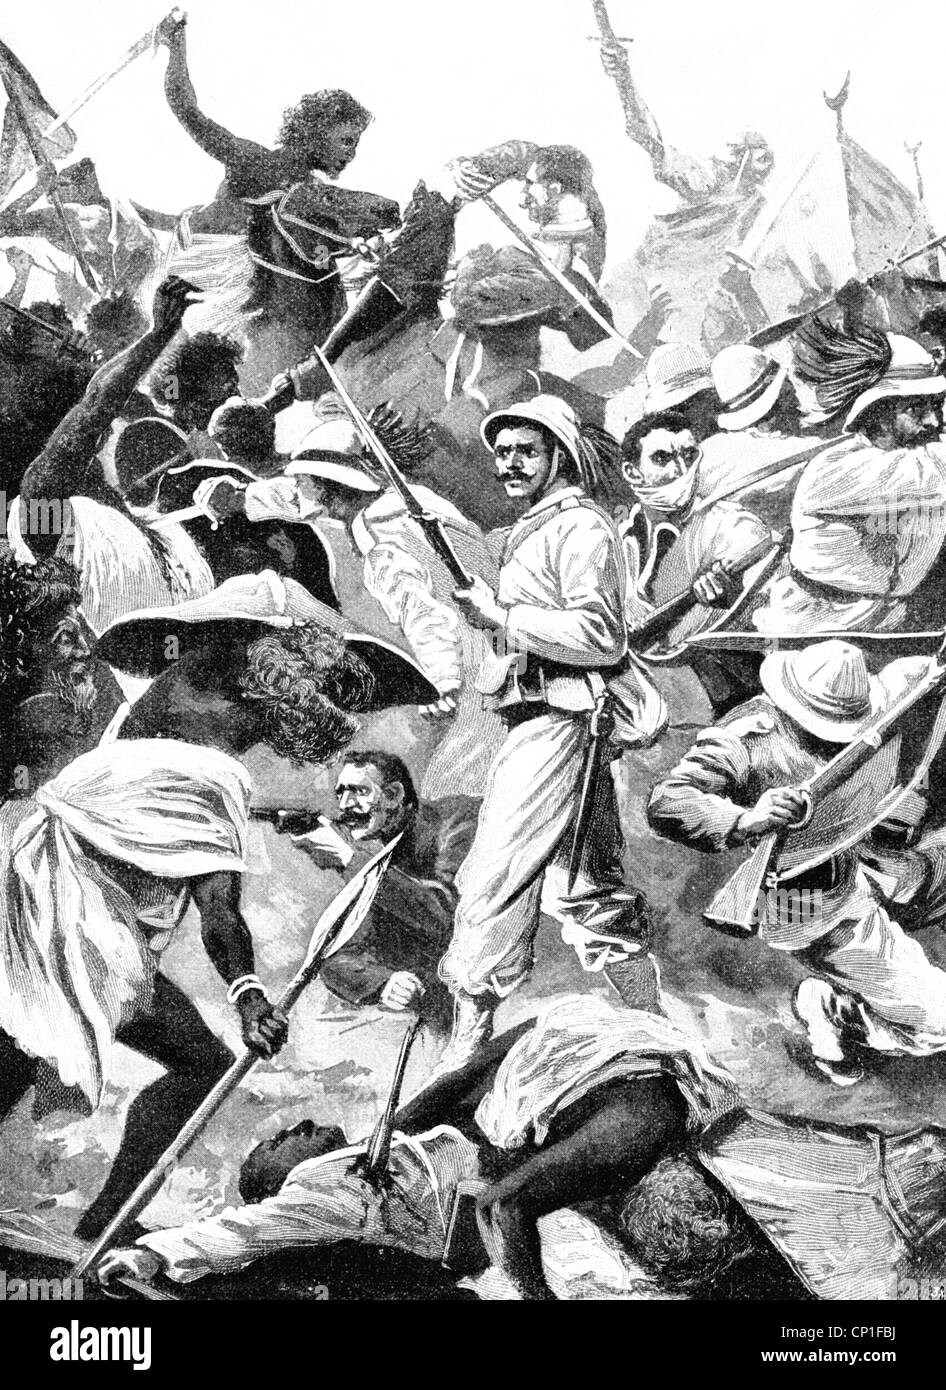 events, First Italo-Ethiopian War, 1893 - 1896, Battle of Adwa, 1.3.1896, contemporary wood engraving, the Ethiopian - Stock Image